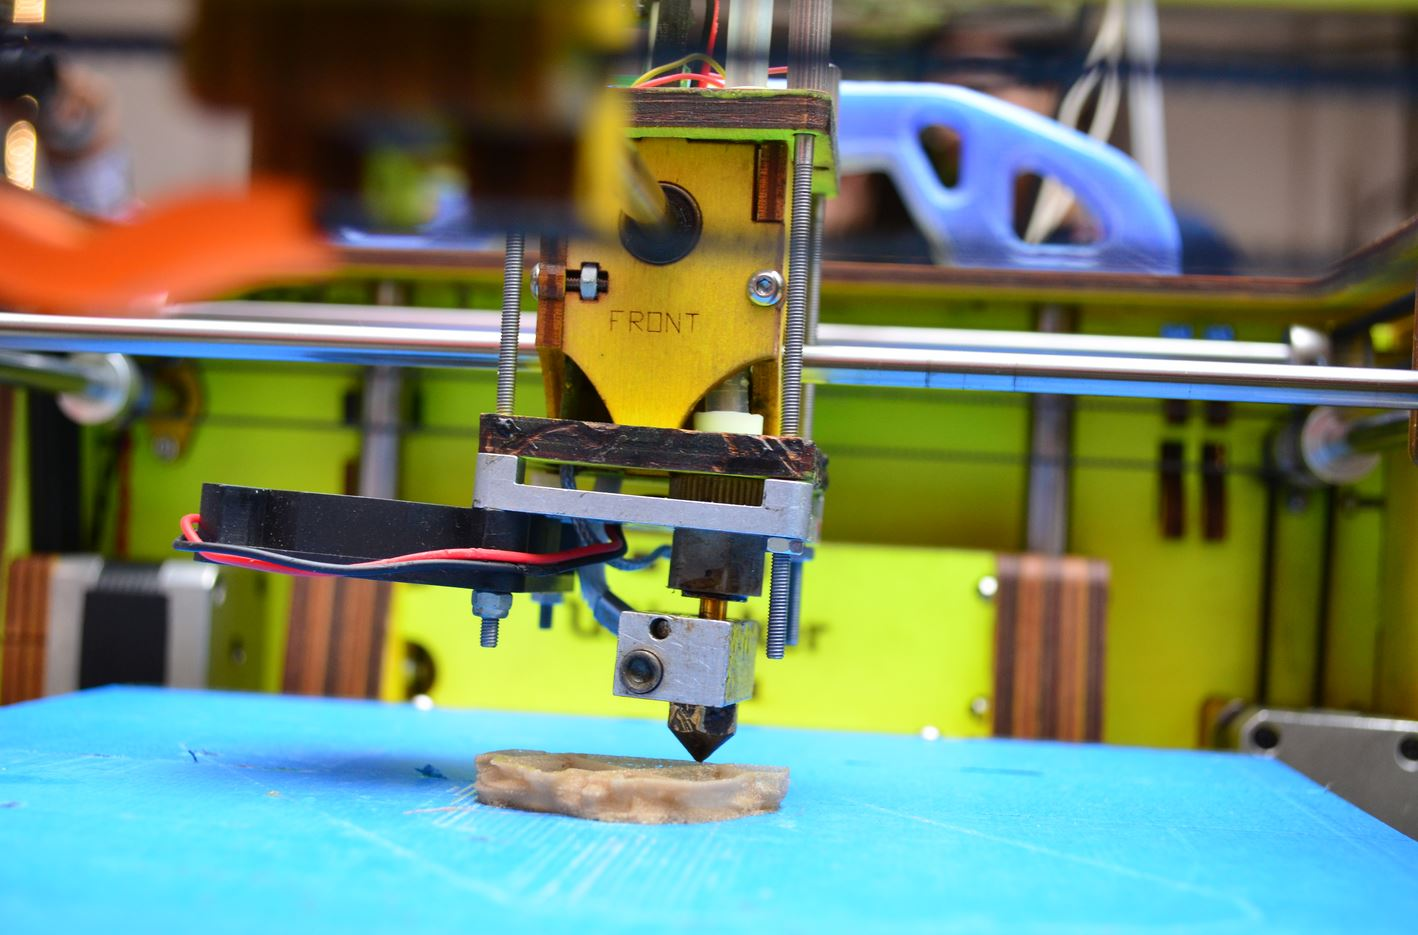 Fabricating the Future - 6 Fascinating Capabilities of 3D Printing